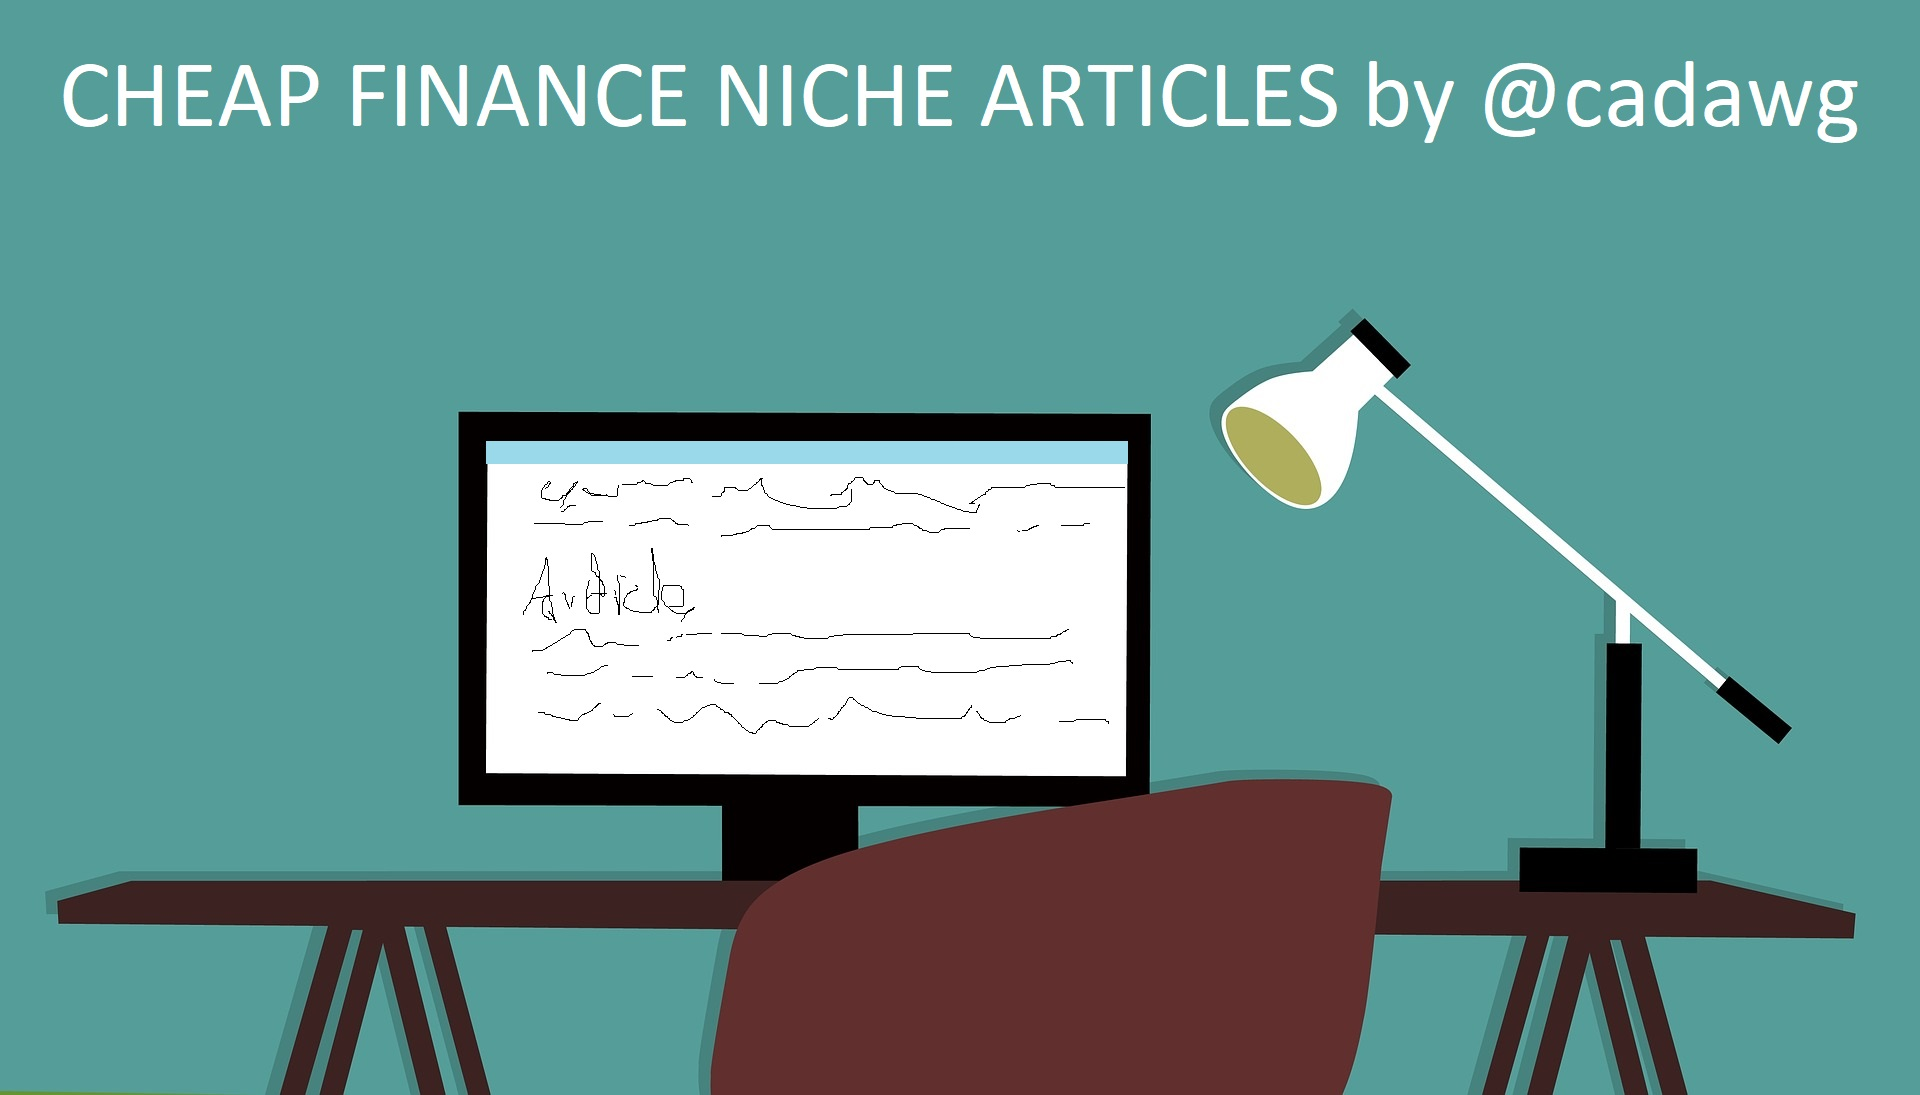 14,126 Finance Articles